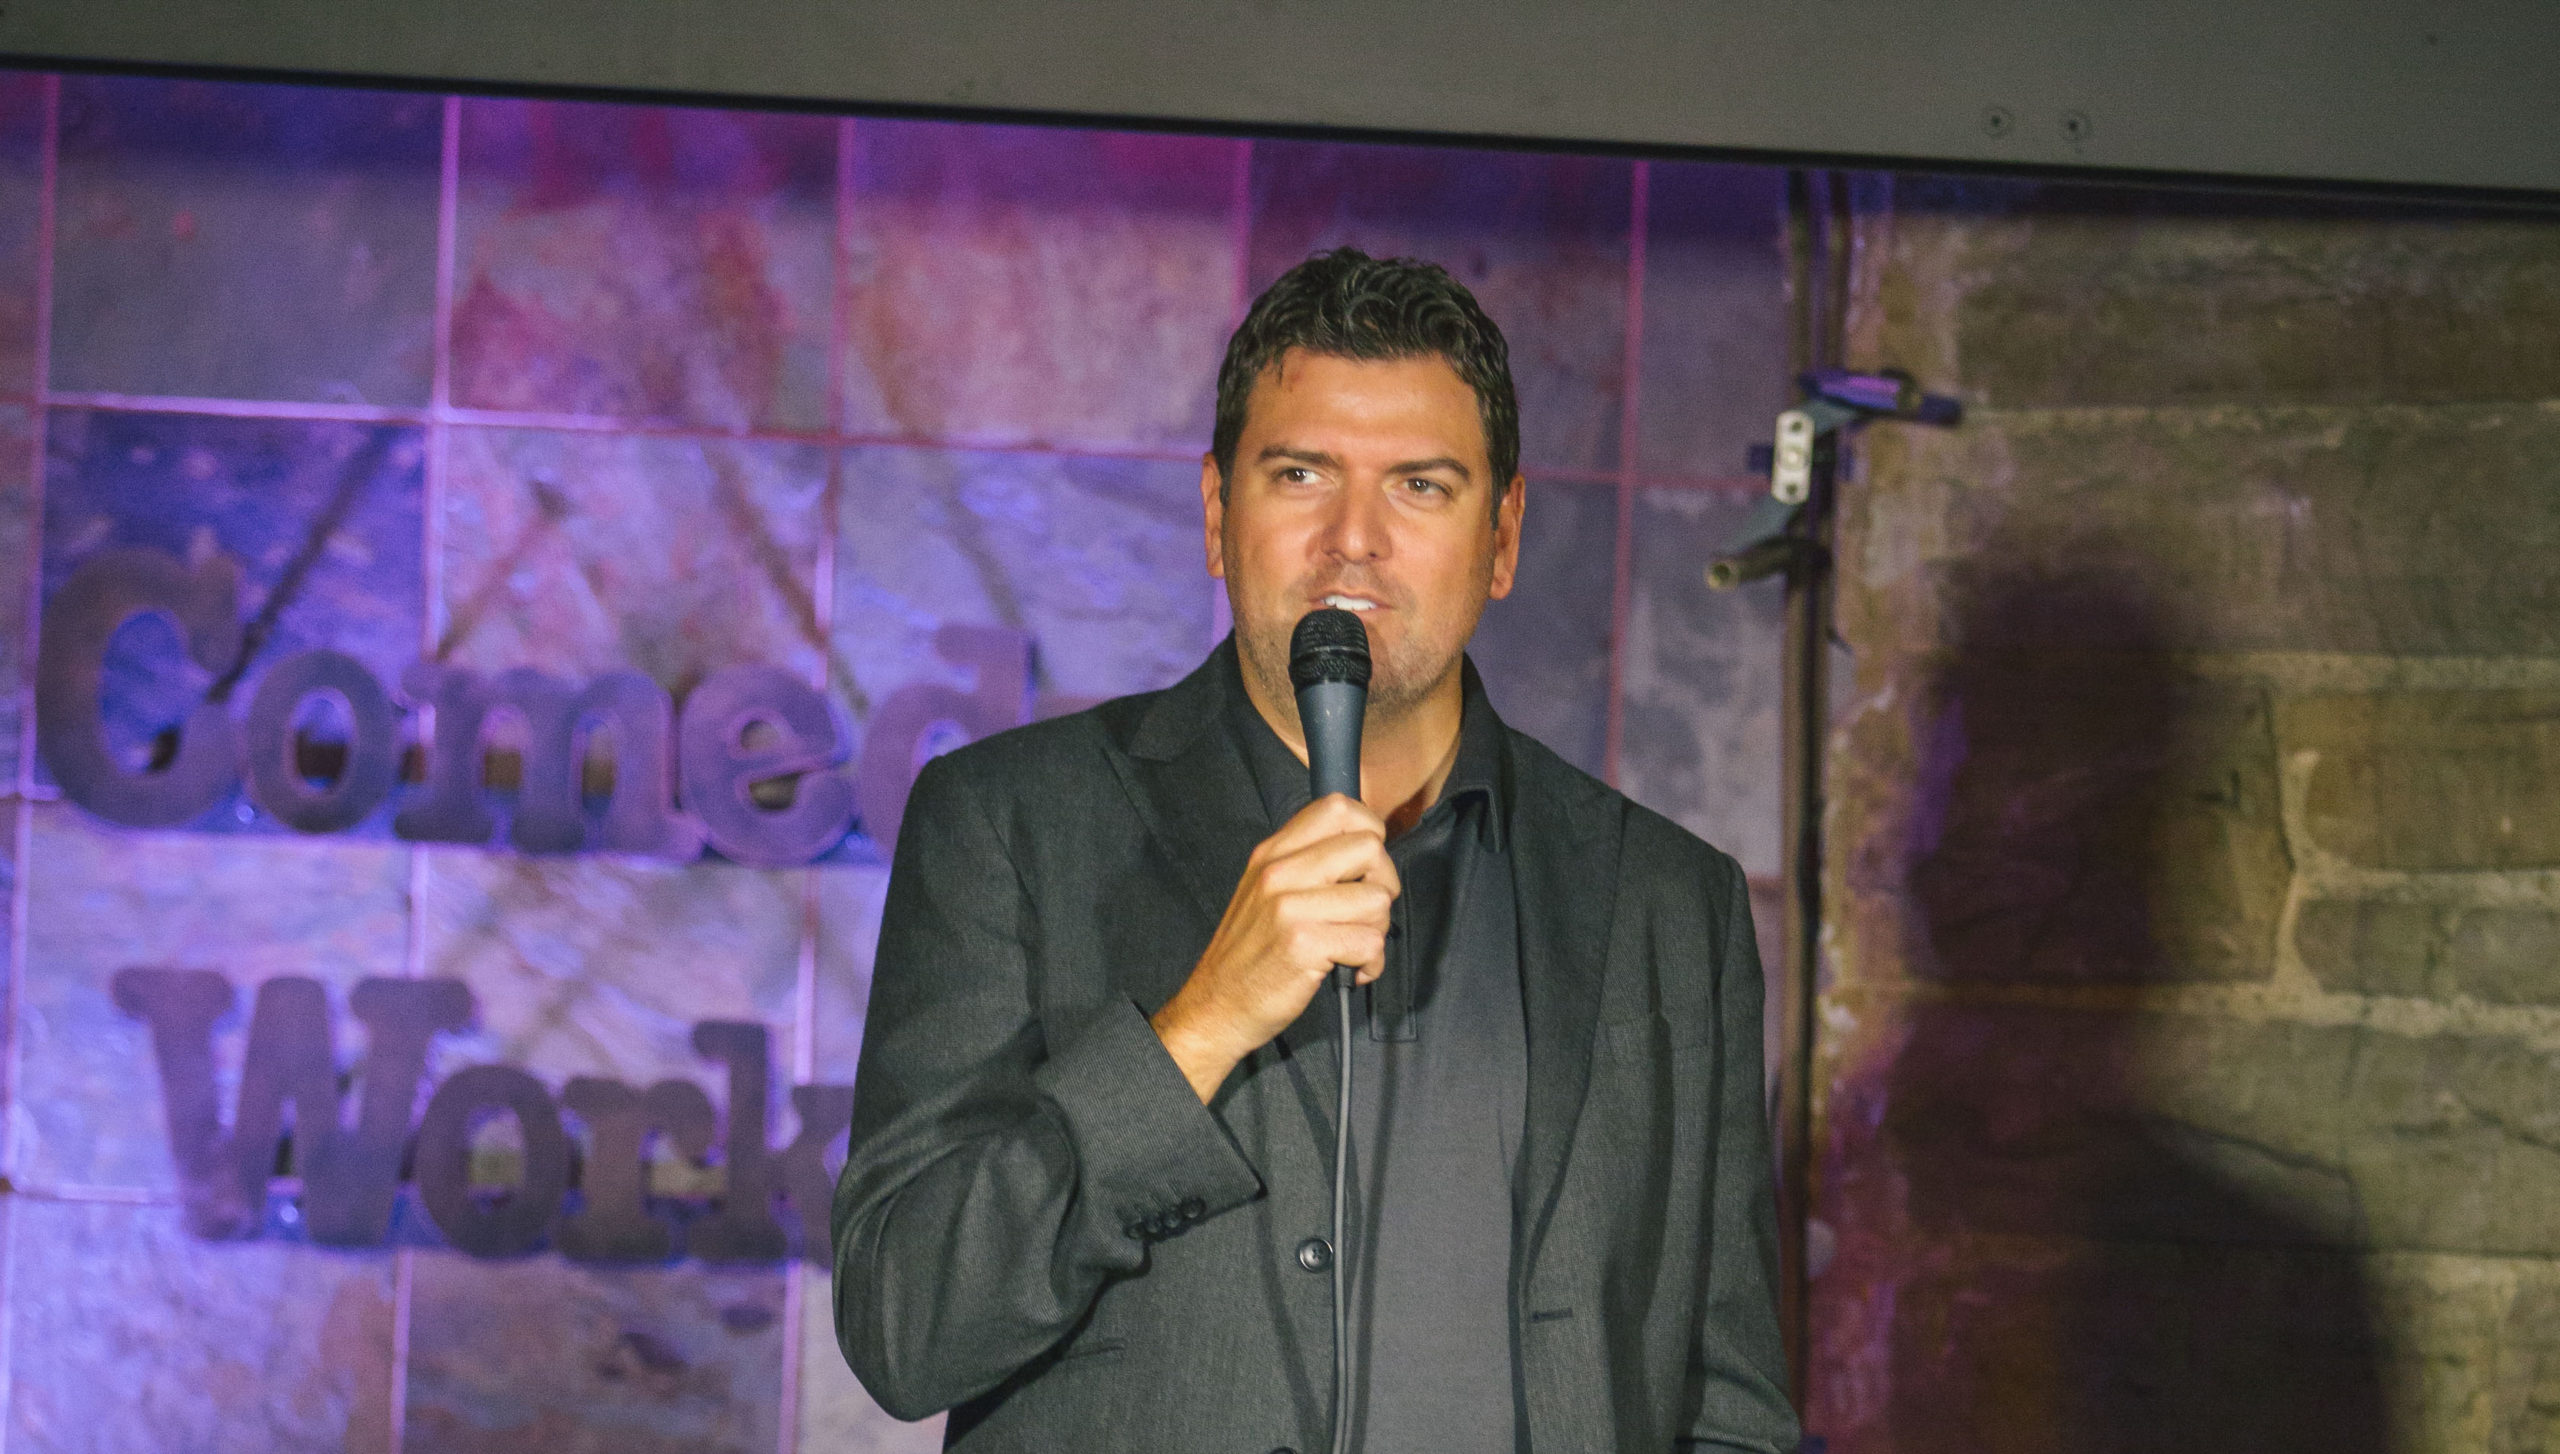 BOOKING INFORMATION: Mike Raftery 720.476.5560 mike@comedyworks.com